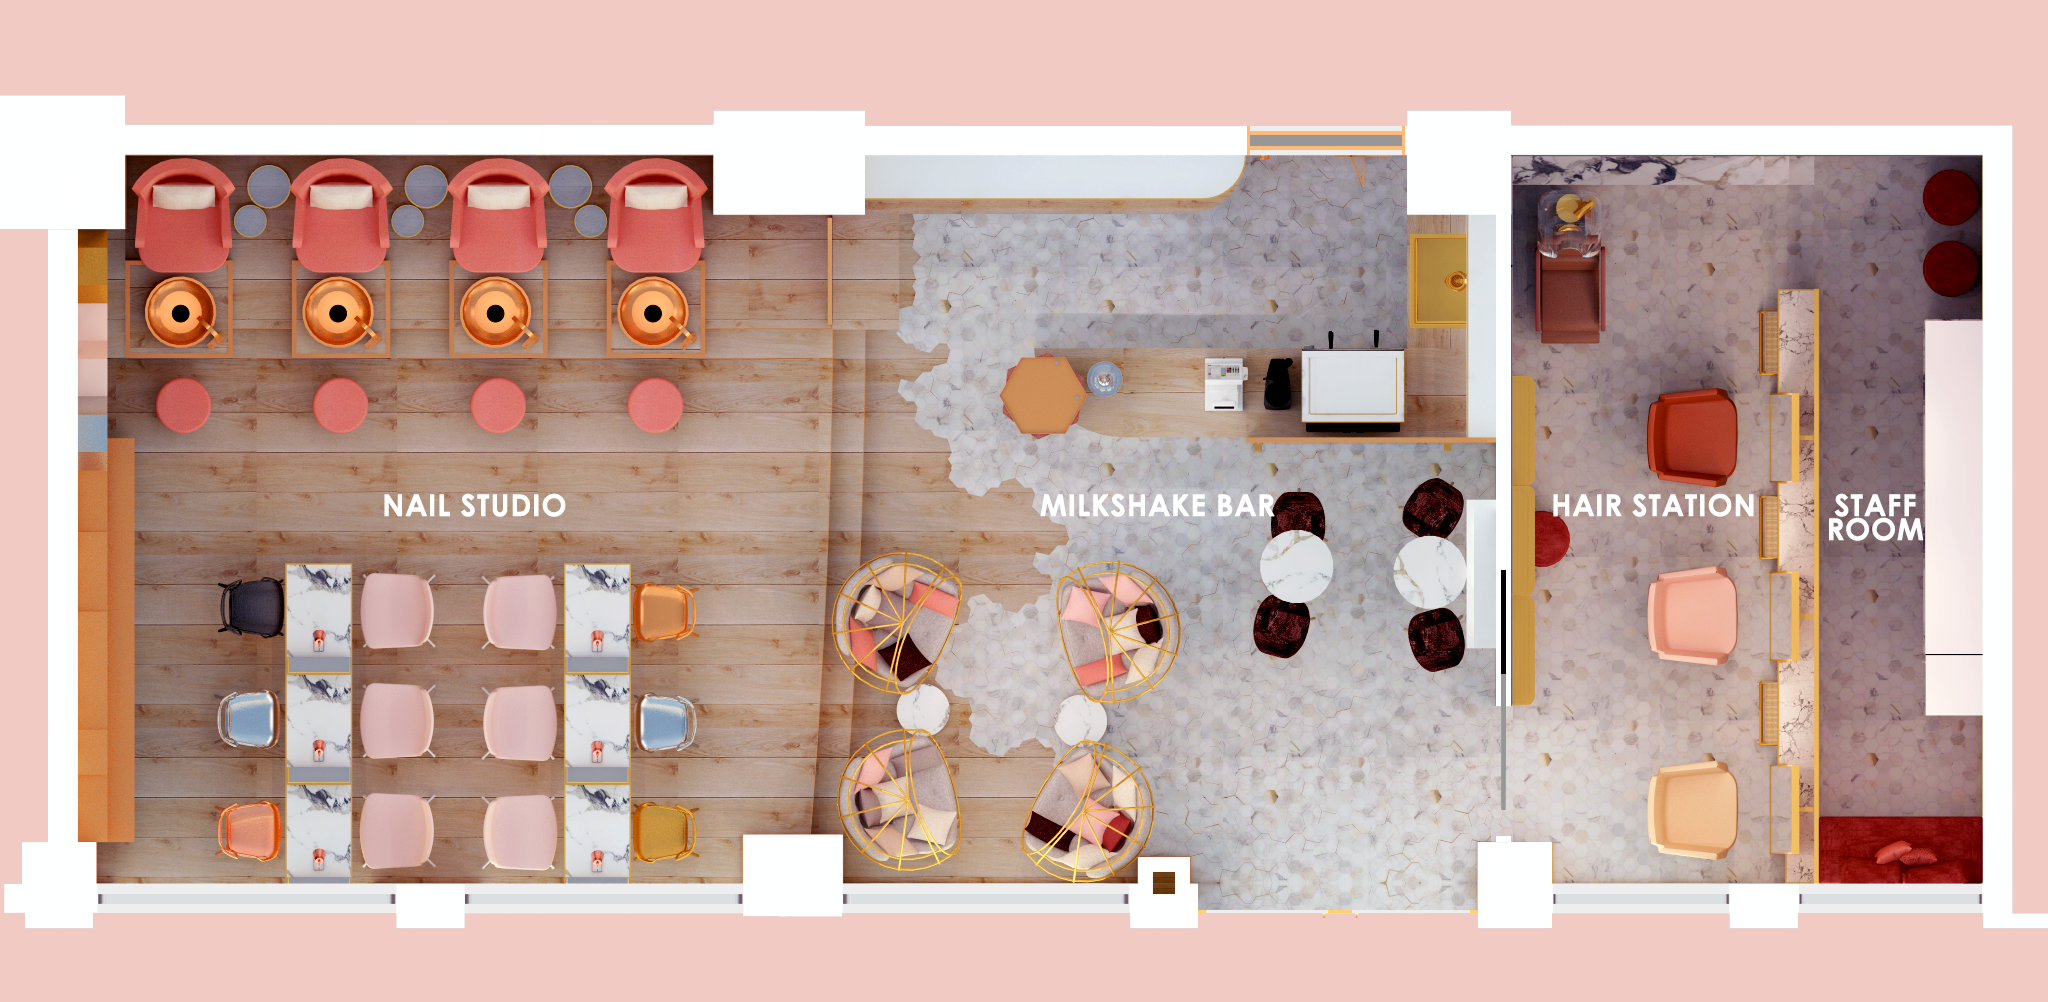 Nail Salon & Cafe Floor Plan images